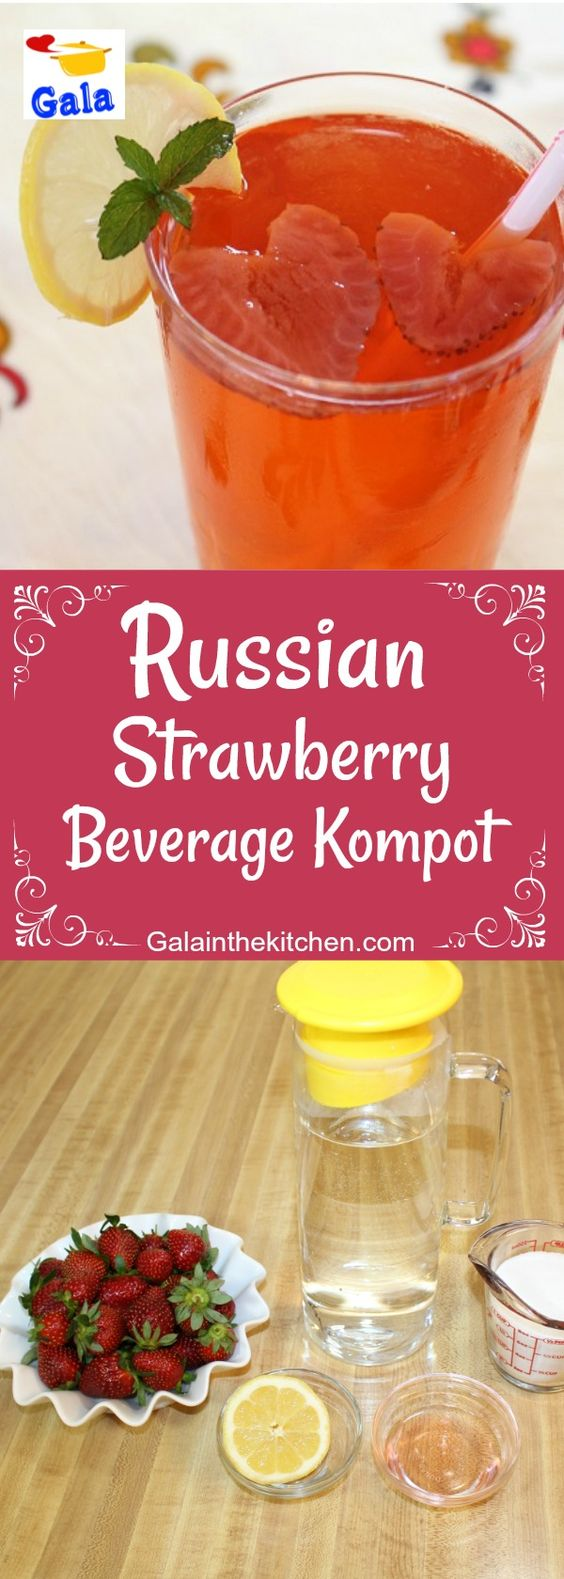 Russian Beetroot Salad Vinaigrette Recipe Gala In The Kitchen Vinaigrette Recipes Recipes Russian Recipes